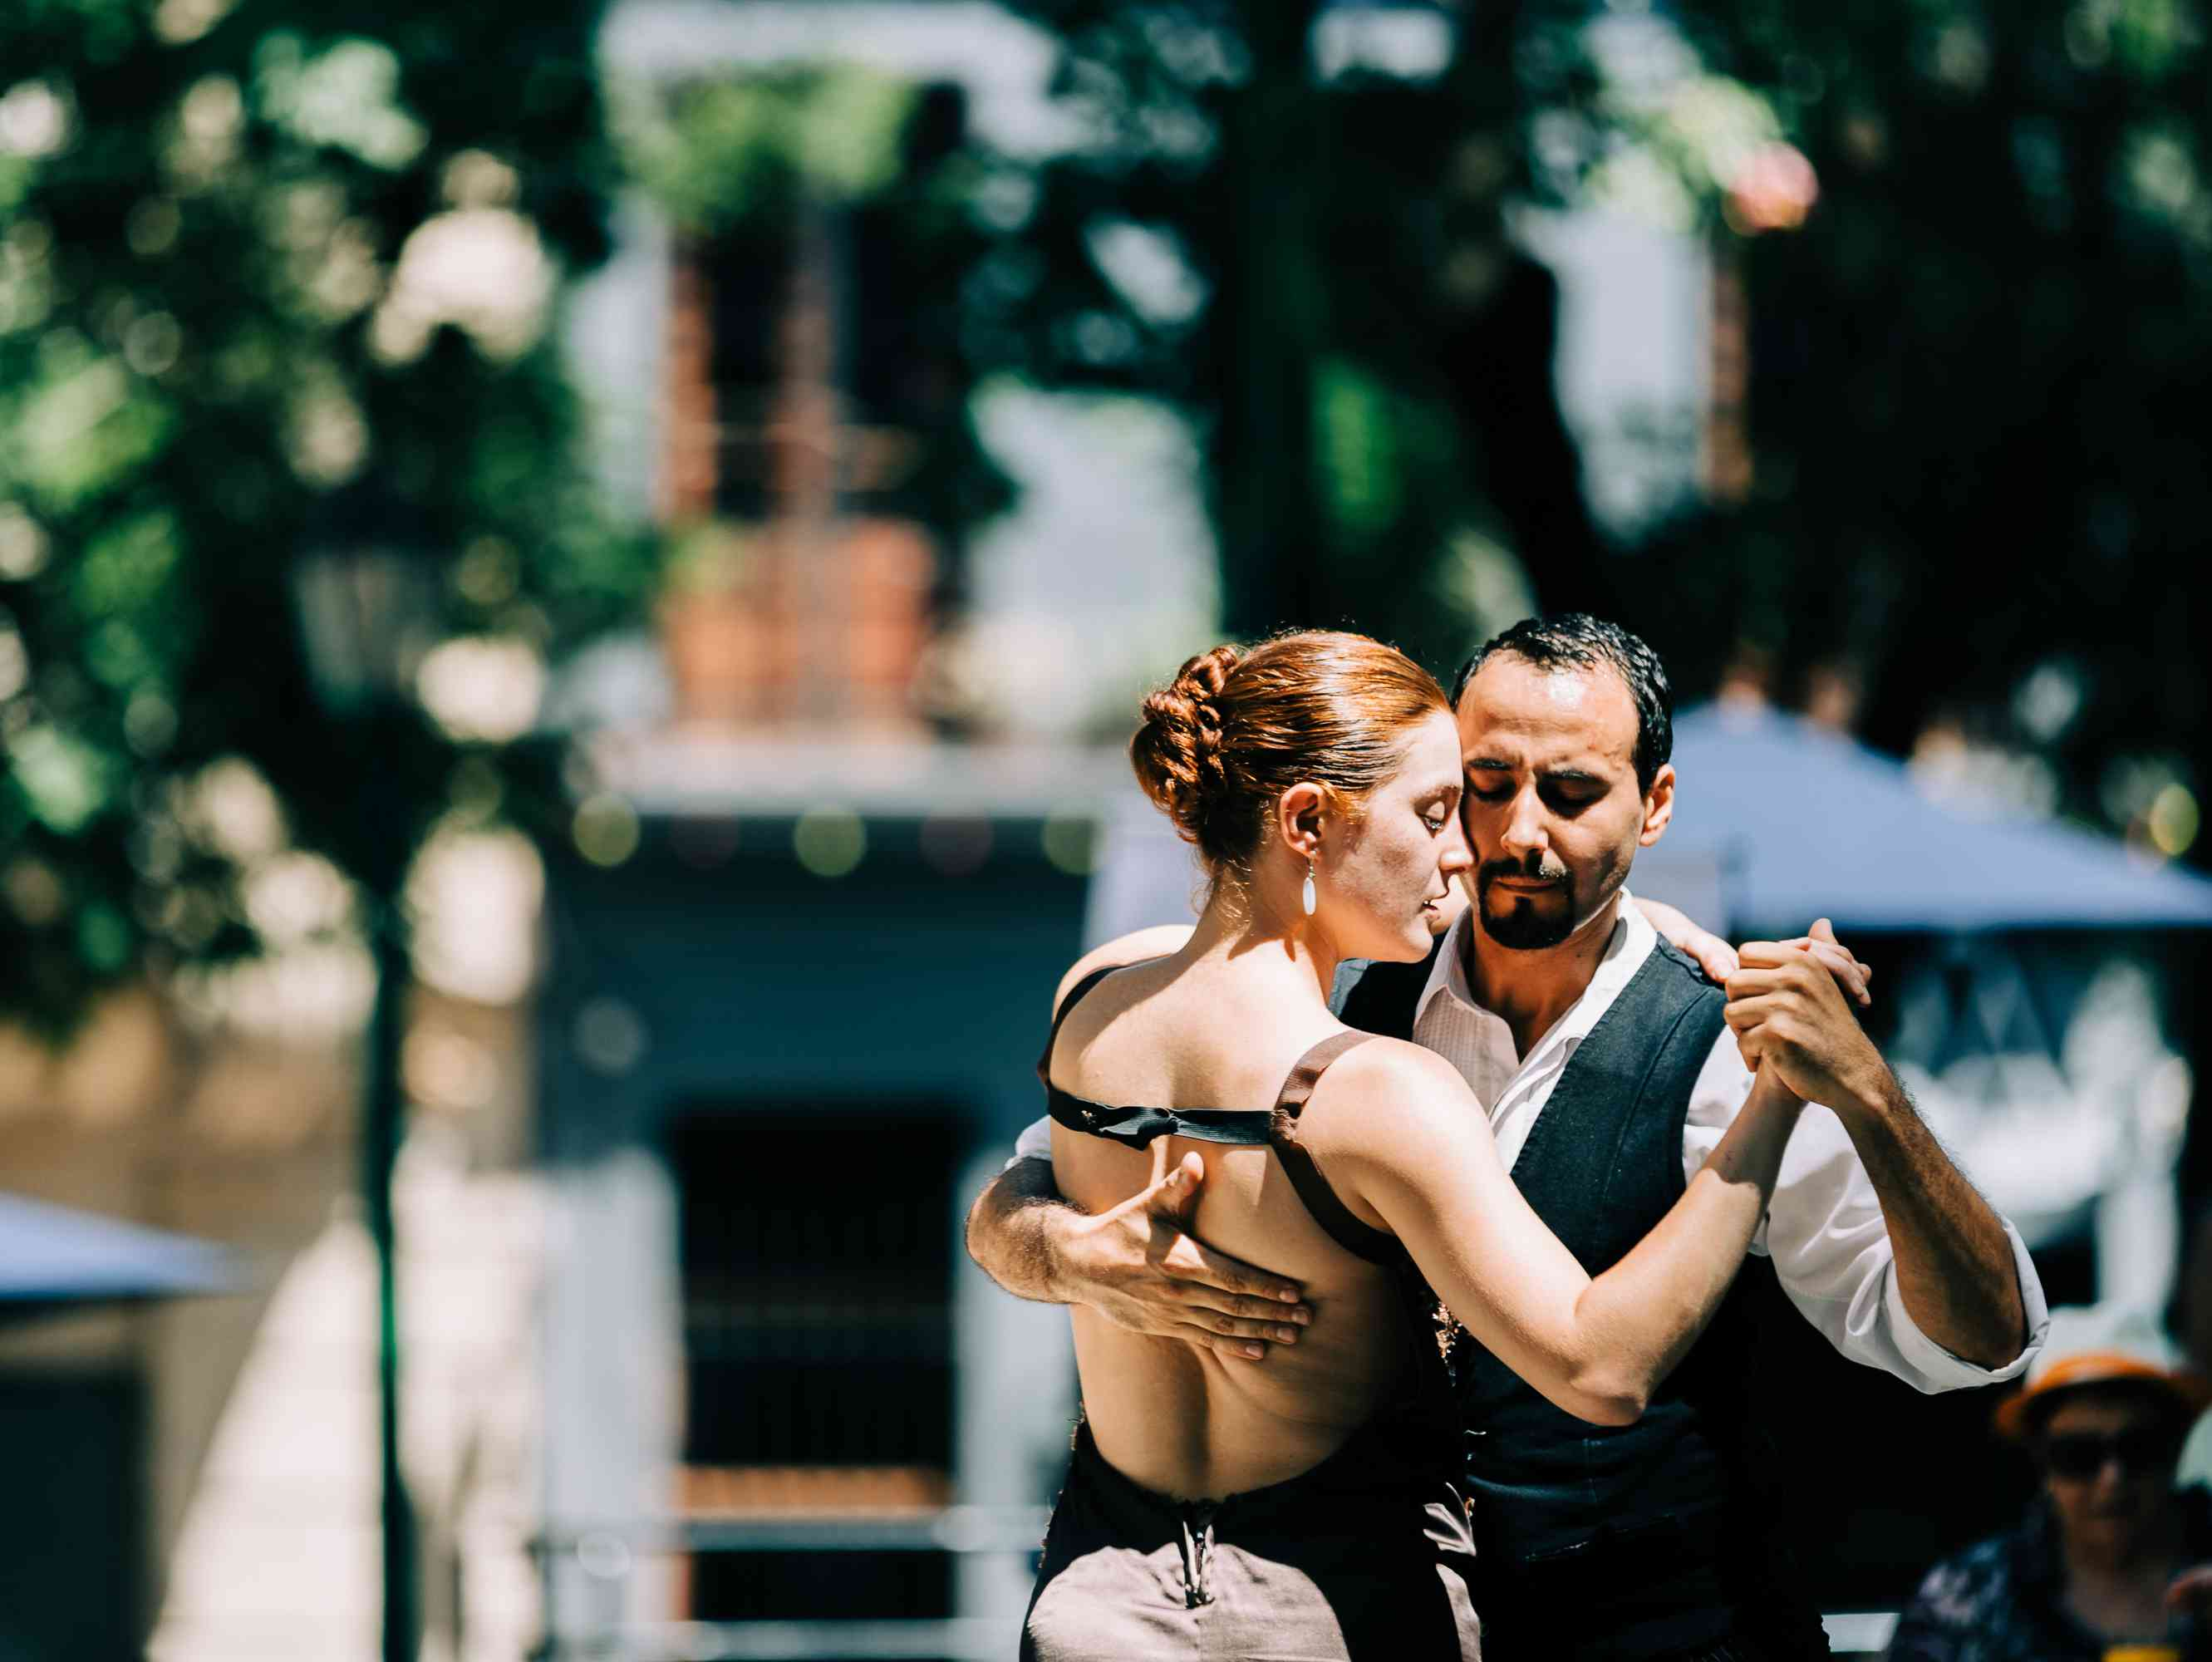 People dancing tango in the streets of Buenos Aires